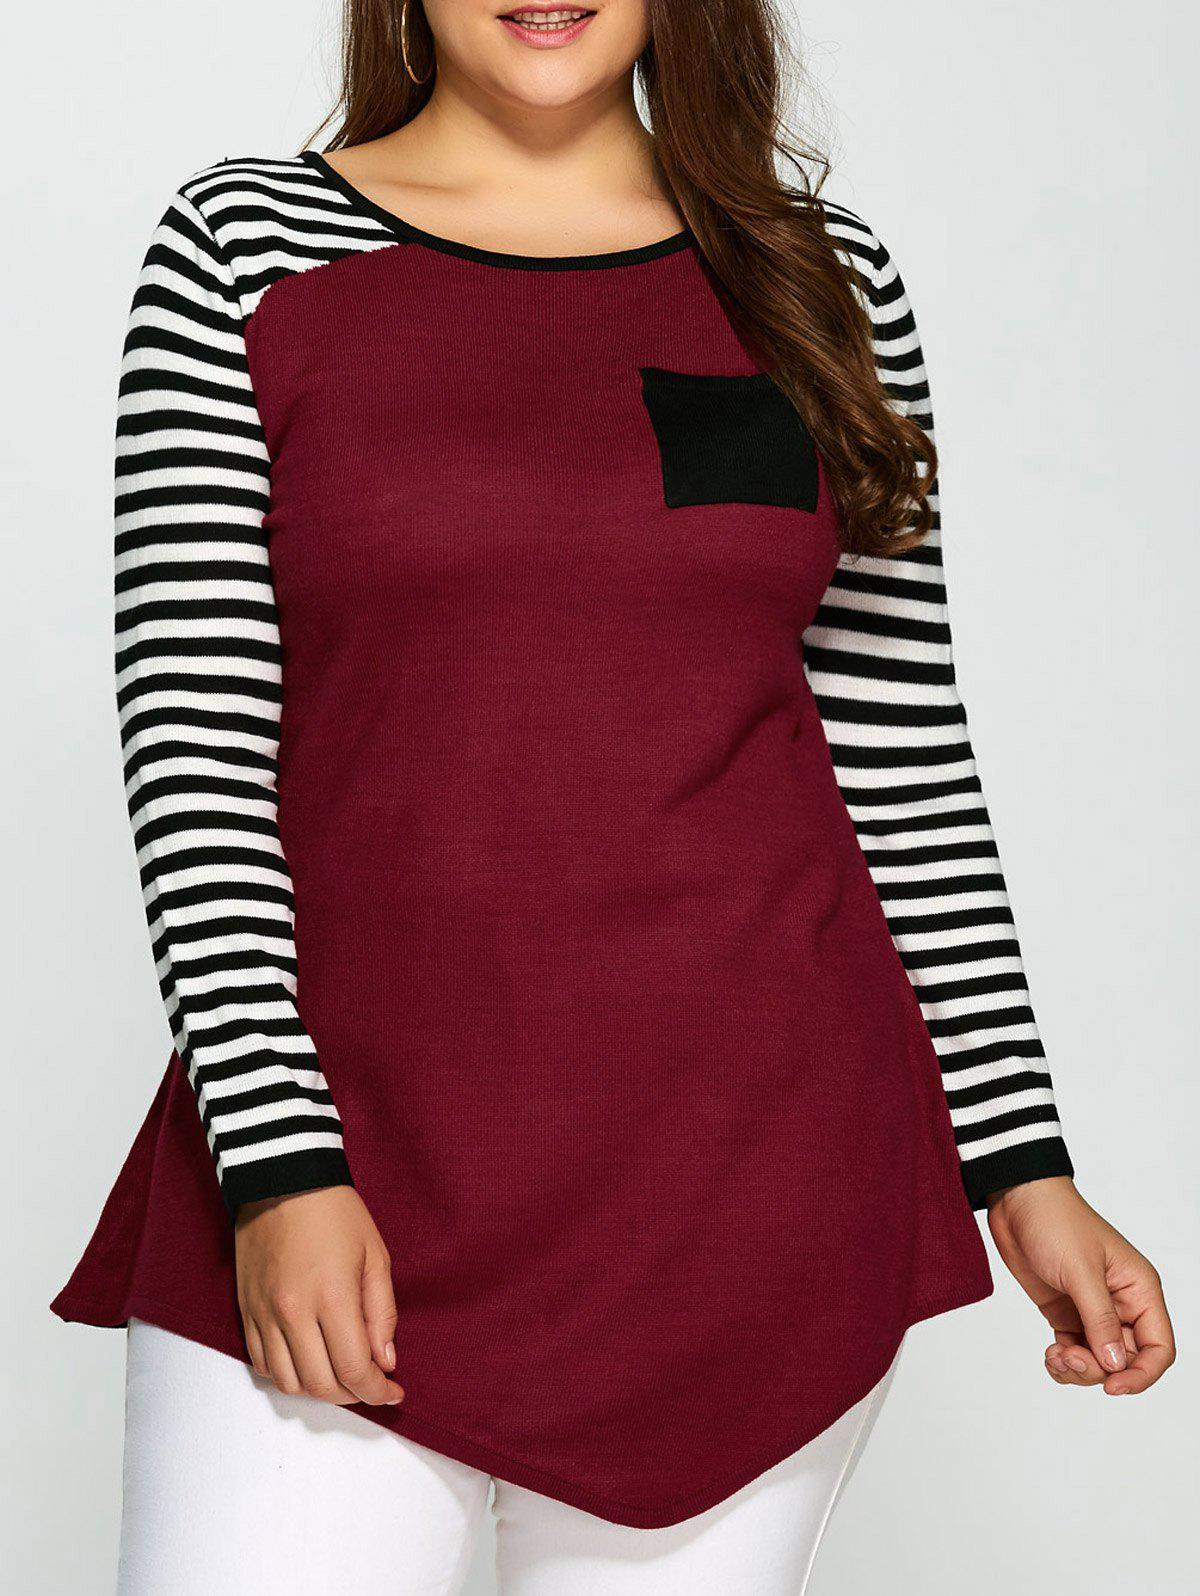 Plus Size One Pocket Asymmetric Striped SweaterWOMEN<br><br>Size: 4XL; Color: COLORMIX; Type: Pullovers; Material: Cotton,Spandex; Sleeve Length: Full; Collar: Round Neck; Technics: Computer Knitted; Style: Fashion; Season: Fall,Spring,Winter; Pattern Type: Striped; Weight: 0.450kg; Package Contents: 1 x Sweater;